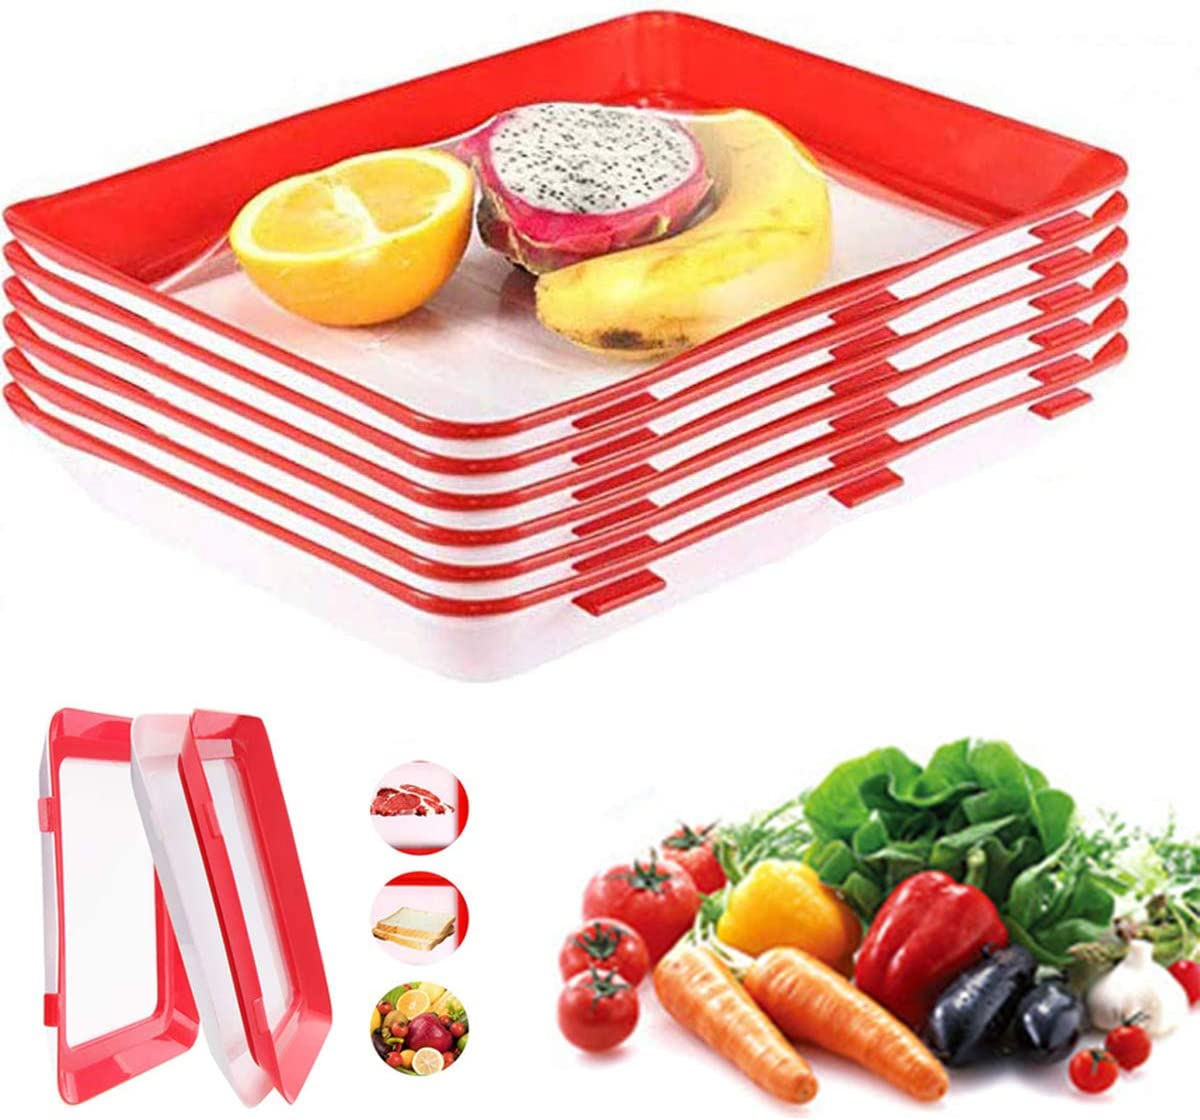 Food Plastic Preservation Tray Storage Container Creative Stackable Food Reusable Preservation Tray Keeping Food Fresh,Keeper Freezer Meal Trays Fresh Fishes,Meat,Steaks,Cheese,Cold Cut(2 Pcs Trays)